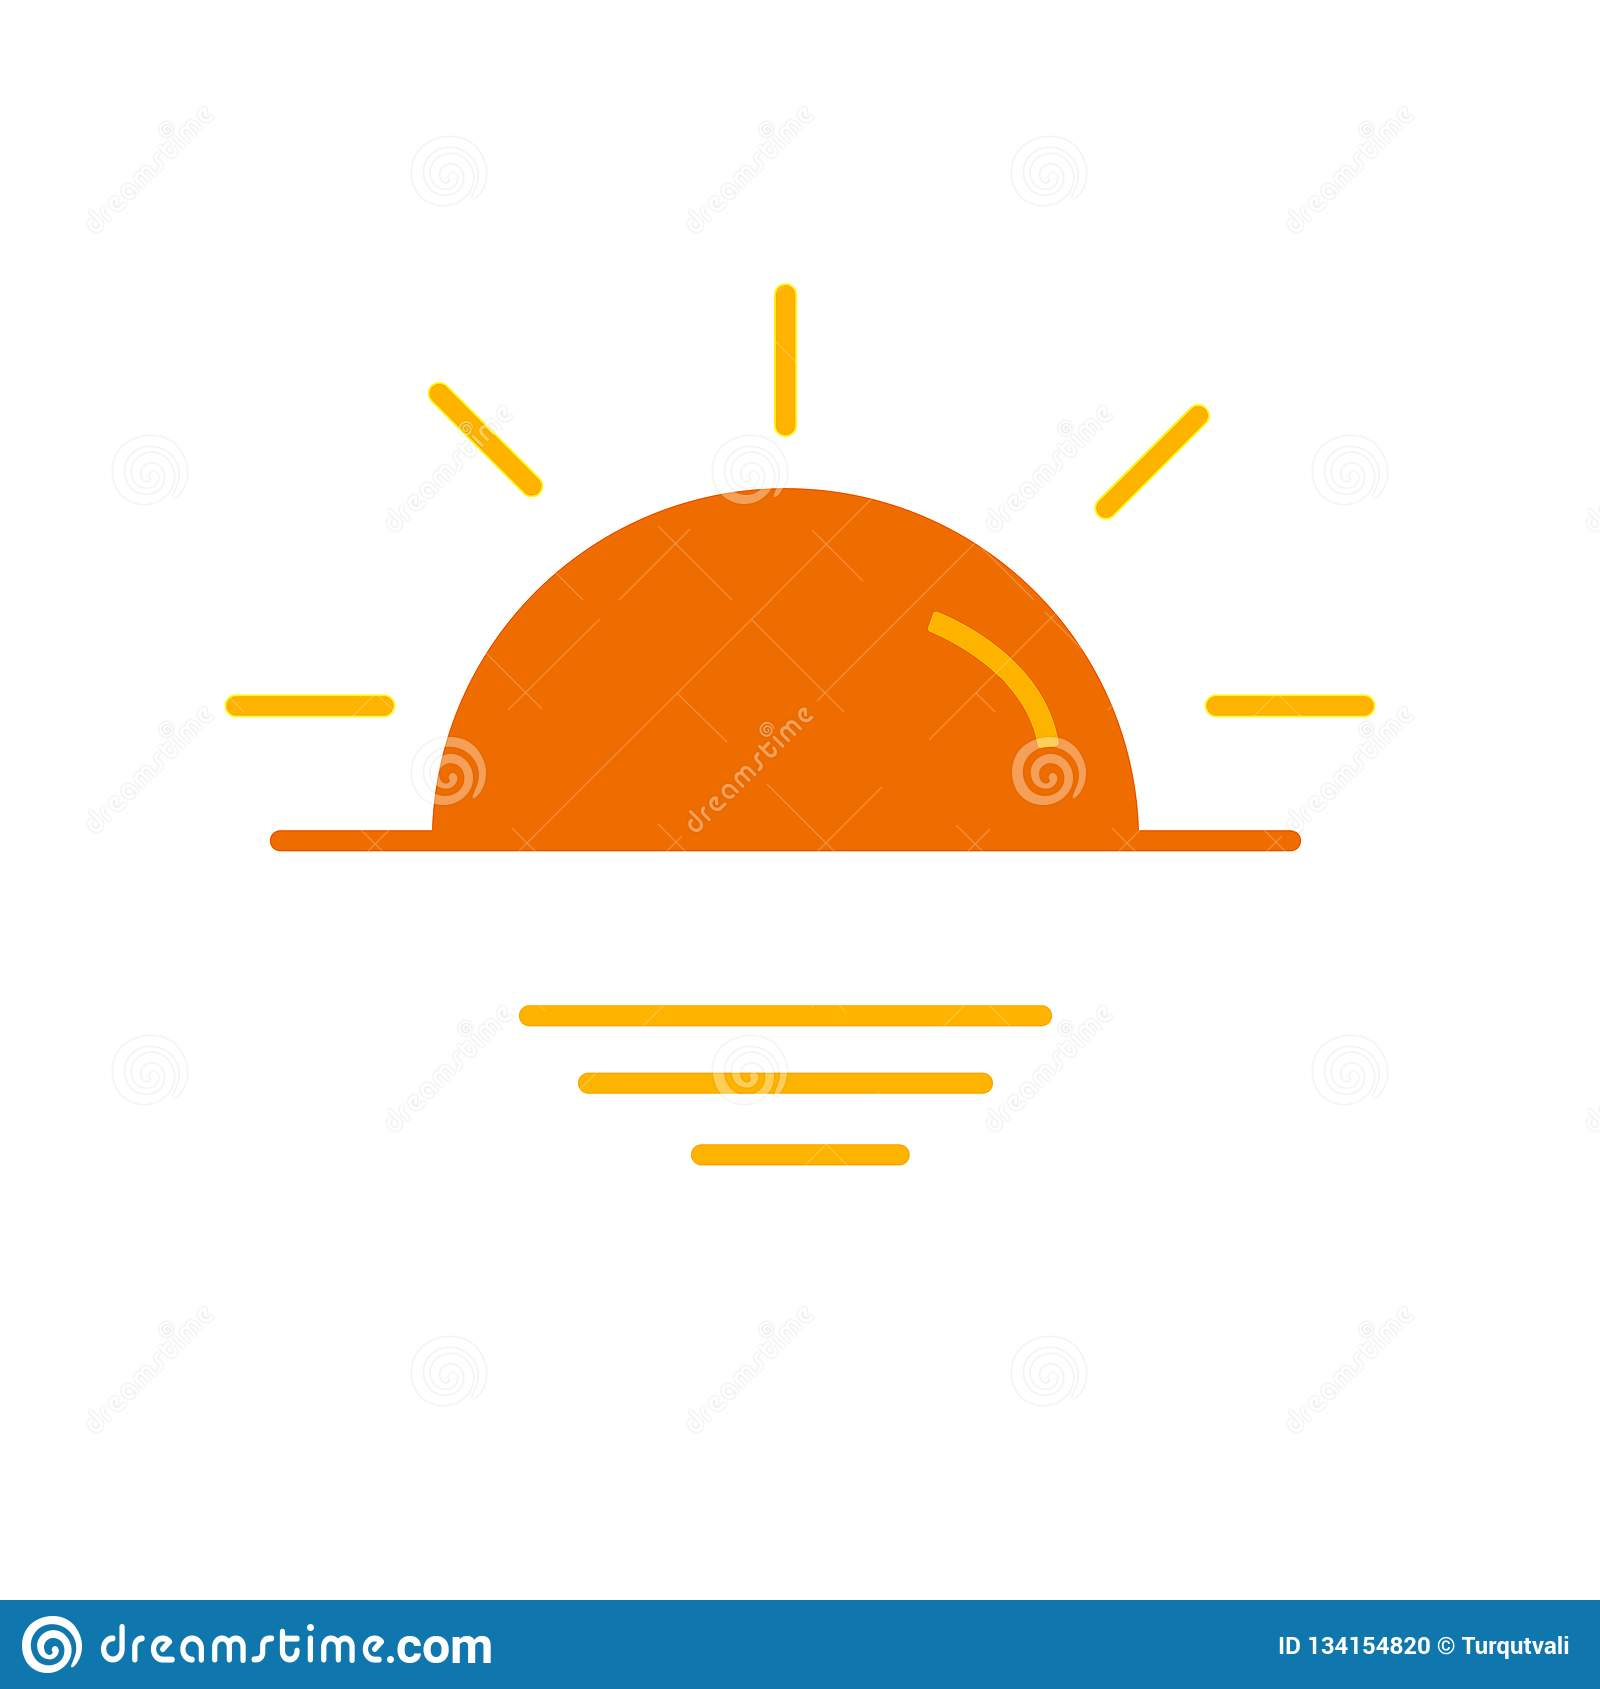 sunset icon vector sign and symbol isolated on white background sunset logo concept stock vector illustration of modern button 134154820 https www dreamstime com sunset icon vector sign symbol isolated white background logo concept your web mobile app design image134154820